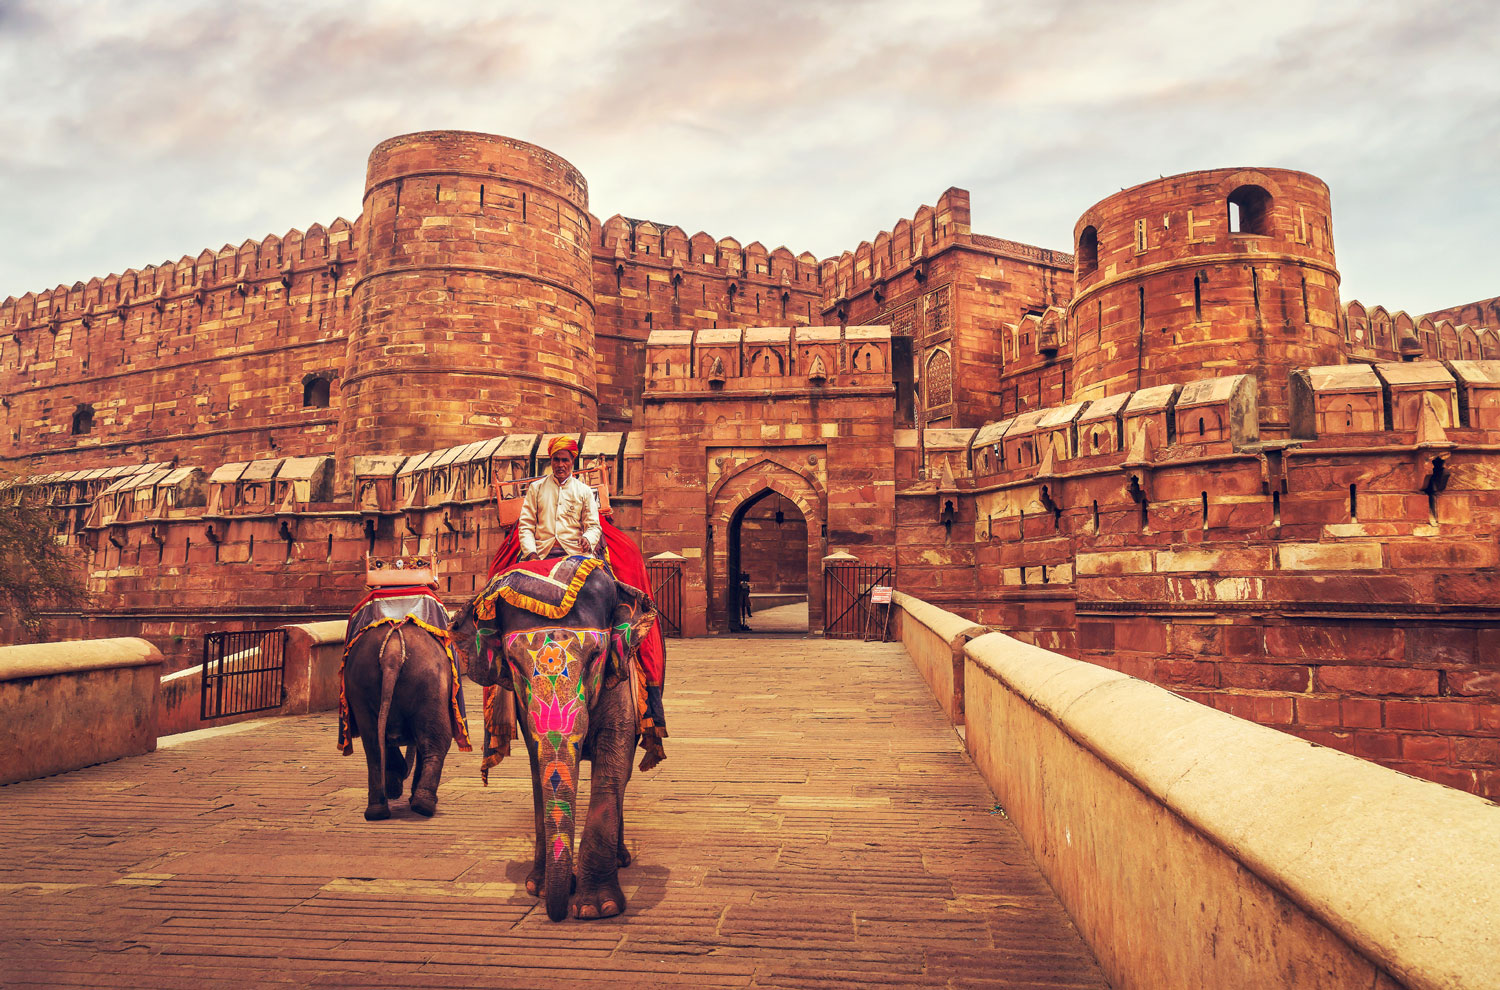 Design, architecture and lifestyle experiences at a 200 year old warrior fort -